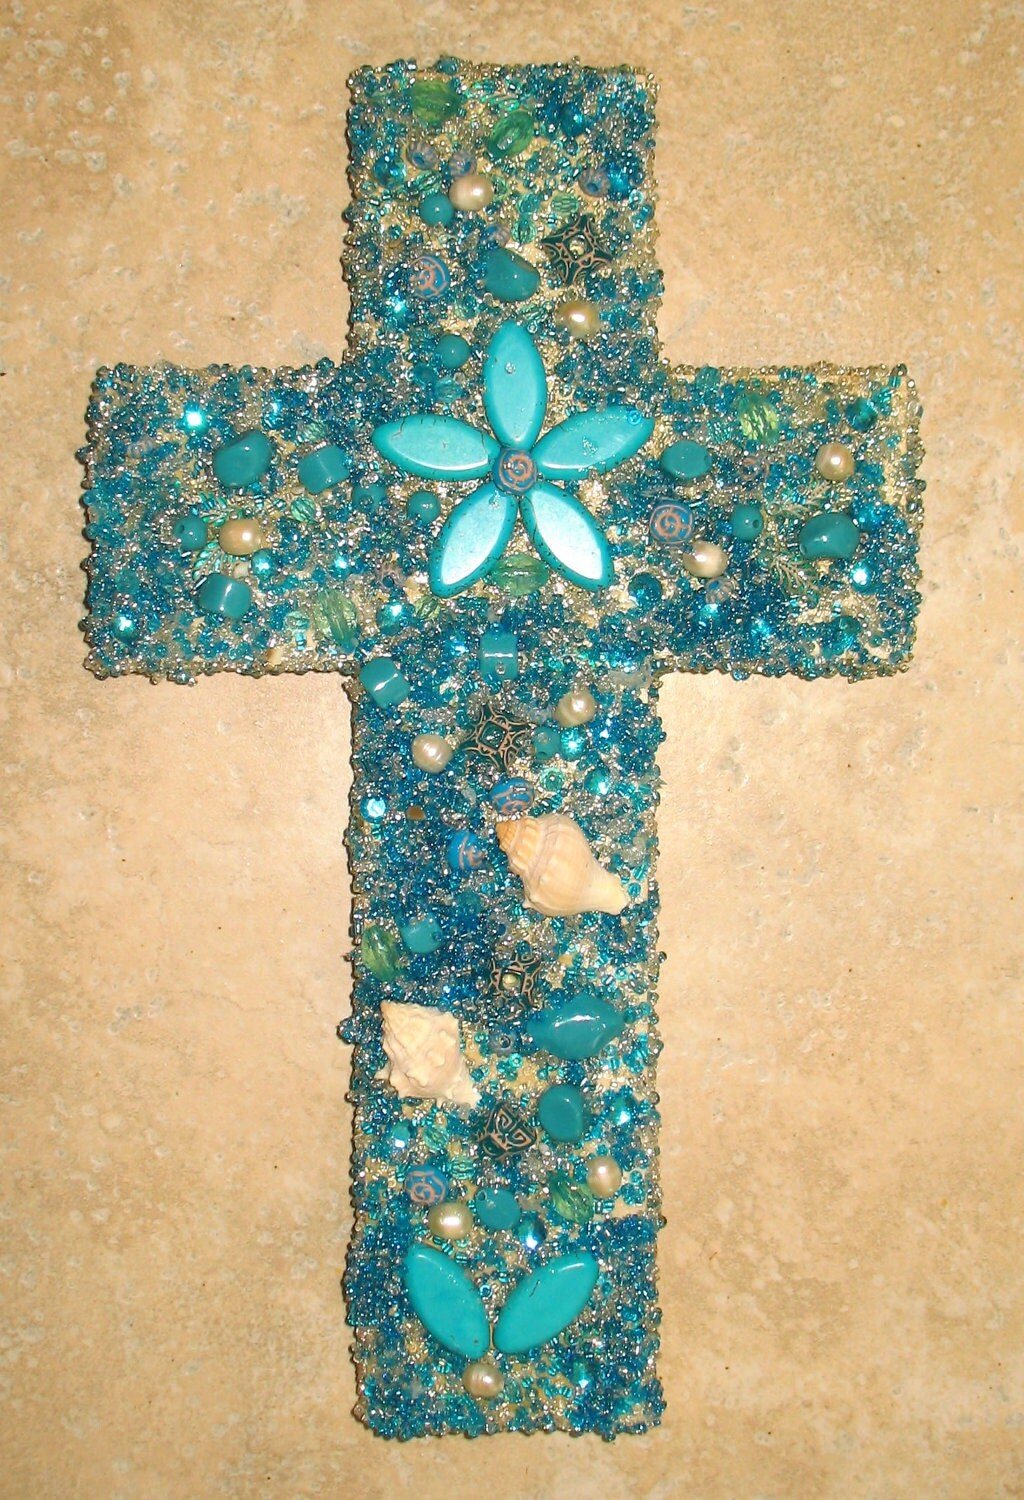 Awesome Turquoise Wall Decor Ideas - The Wall Art Decorations ...